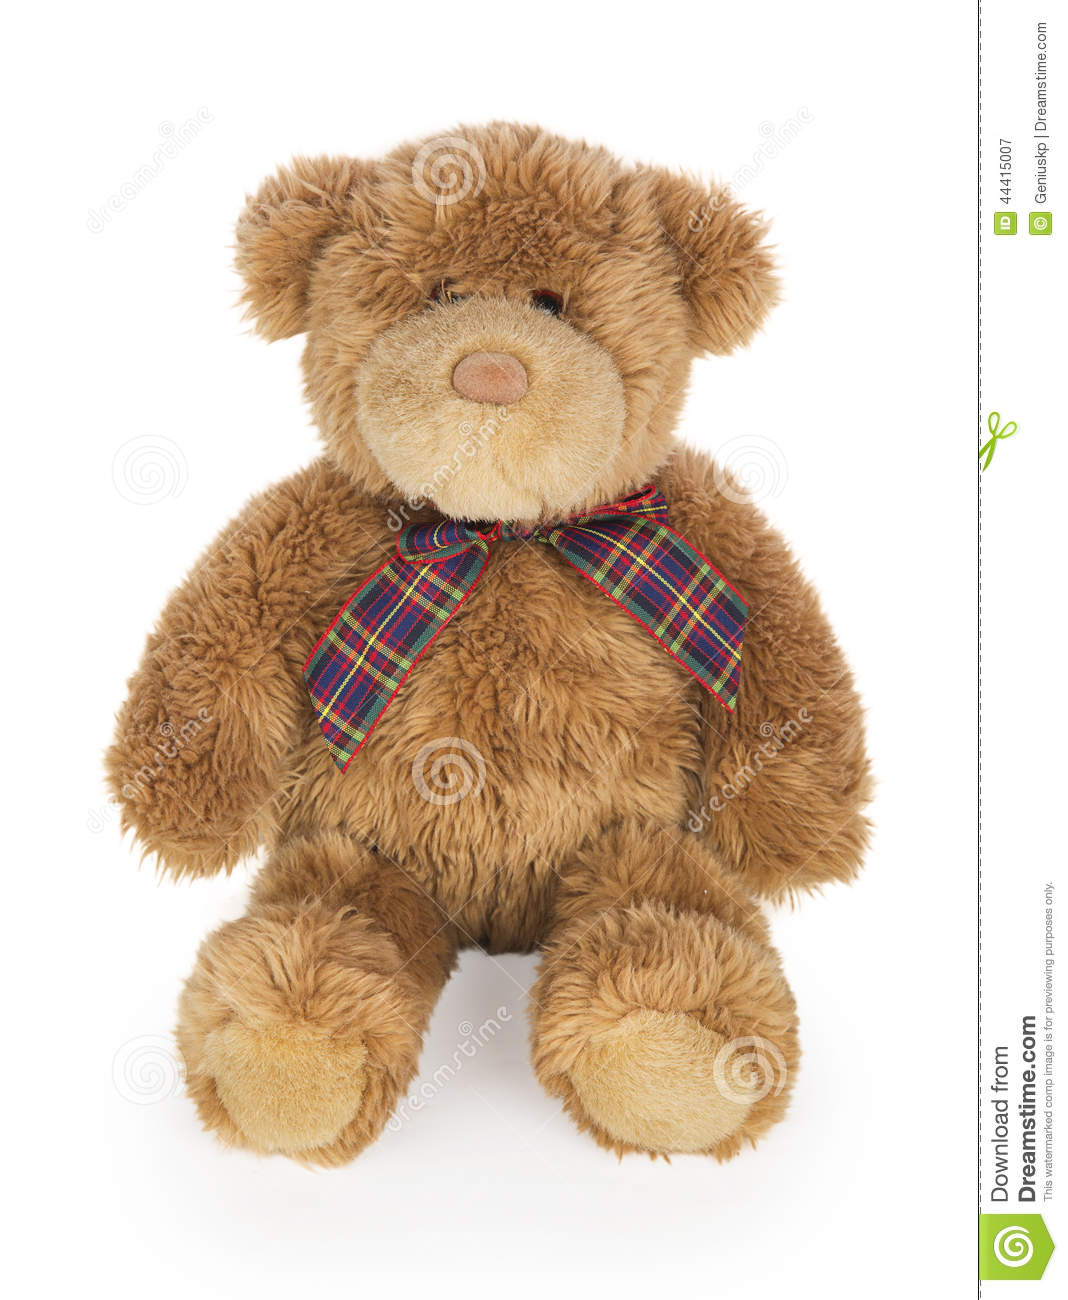 Teddy bear toy